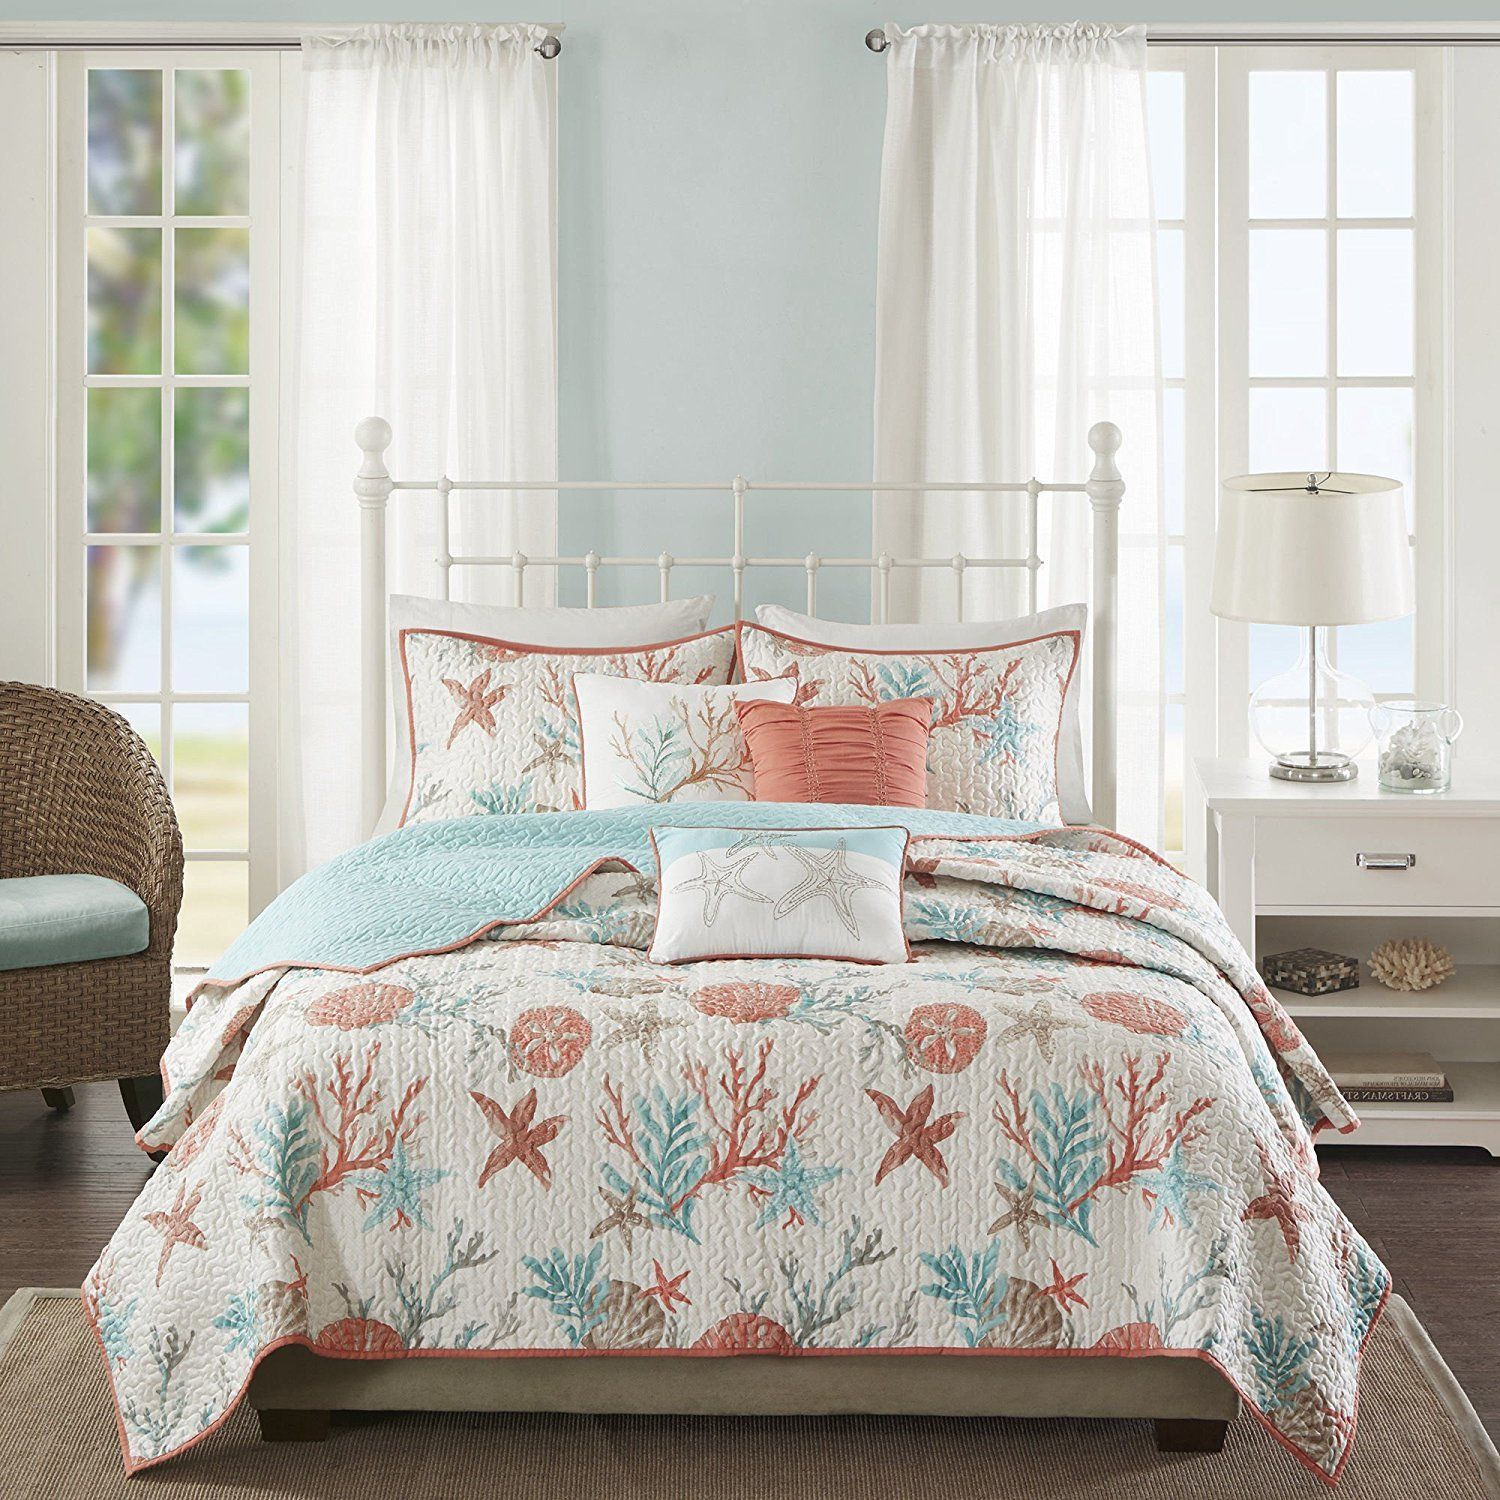 bedroom king comforter sets ideas house furniture themed decor seaside quilts beach bedspreads caribbean